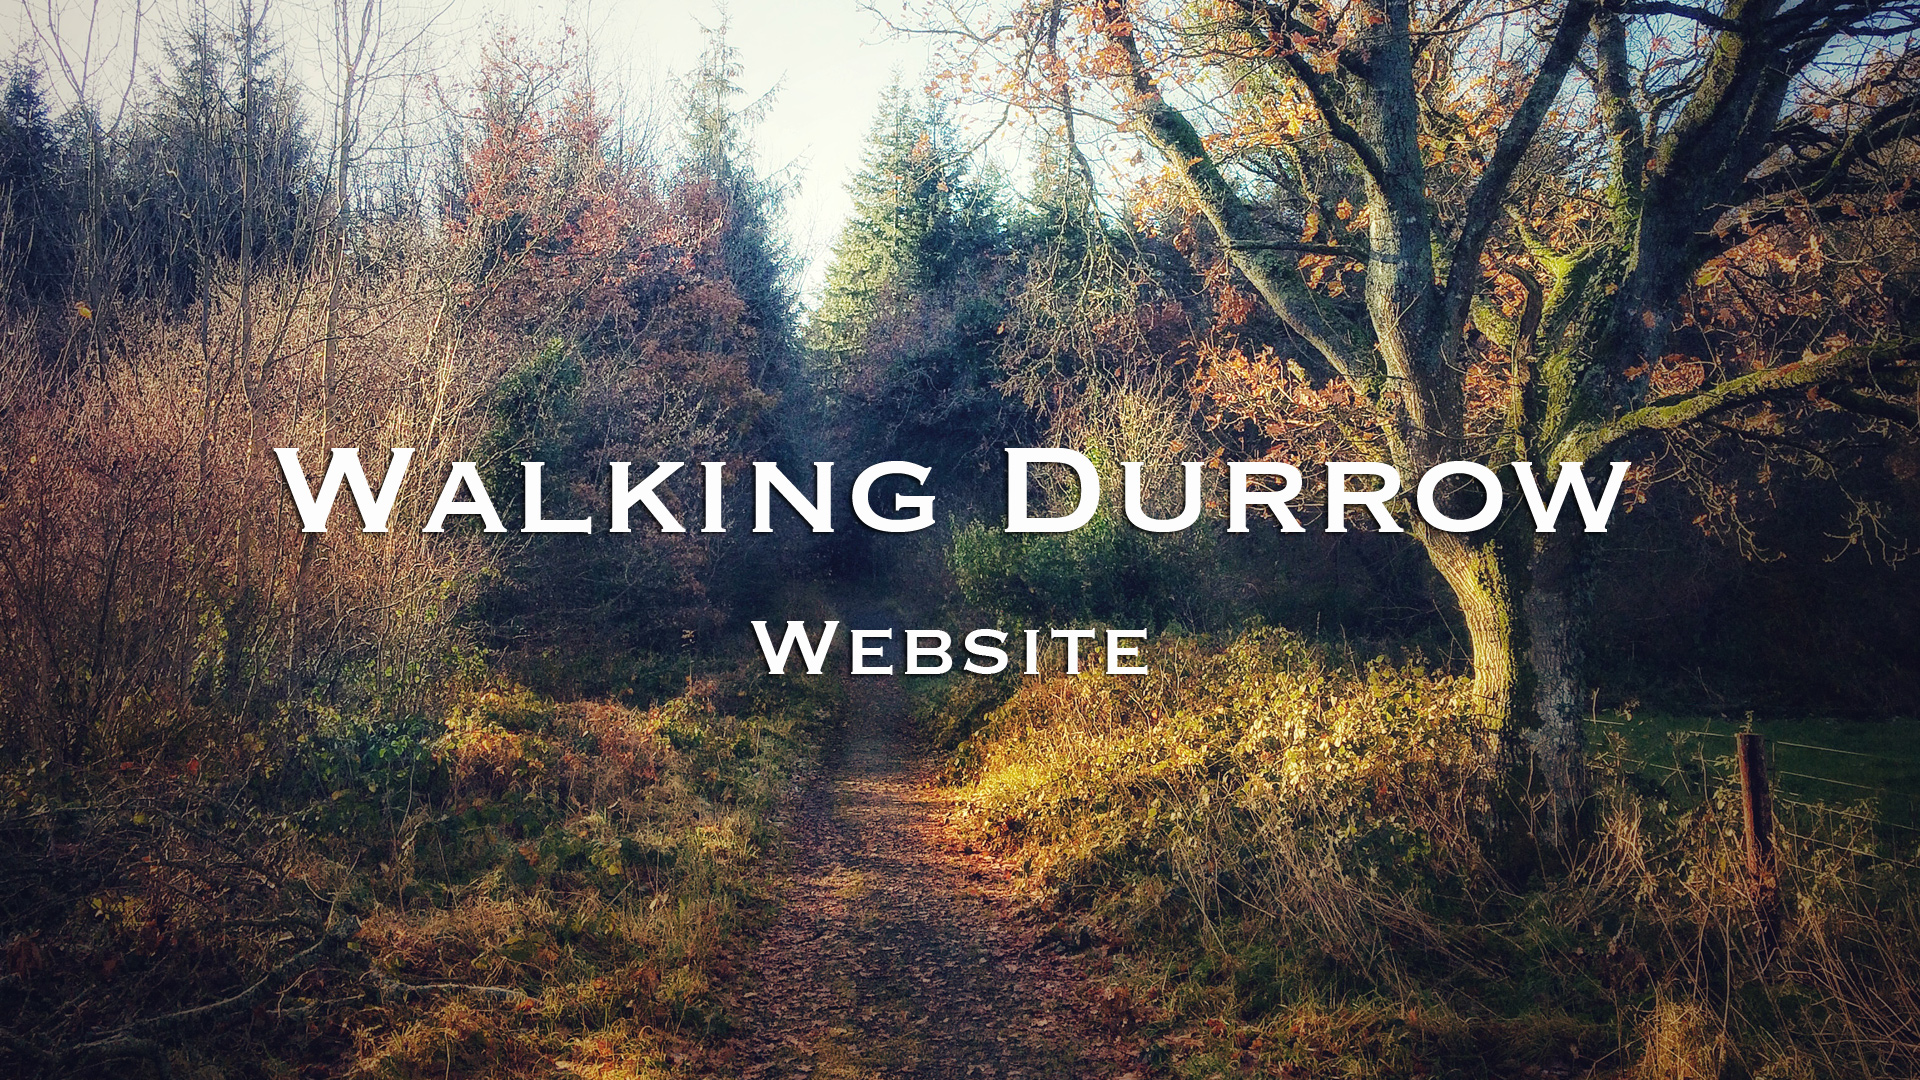 Walking Durrow Website